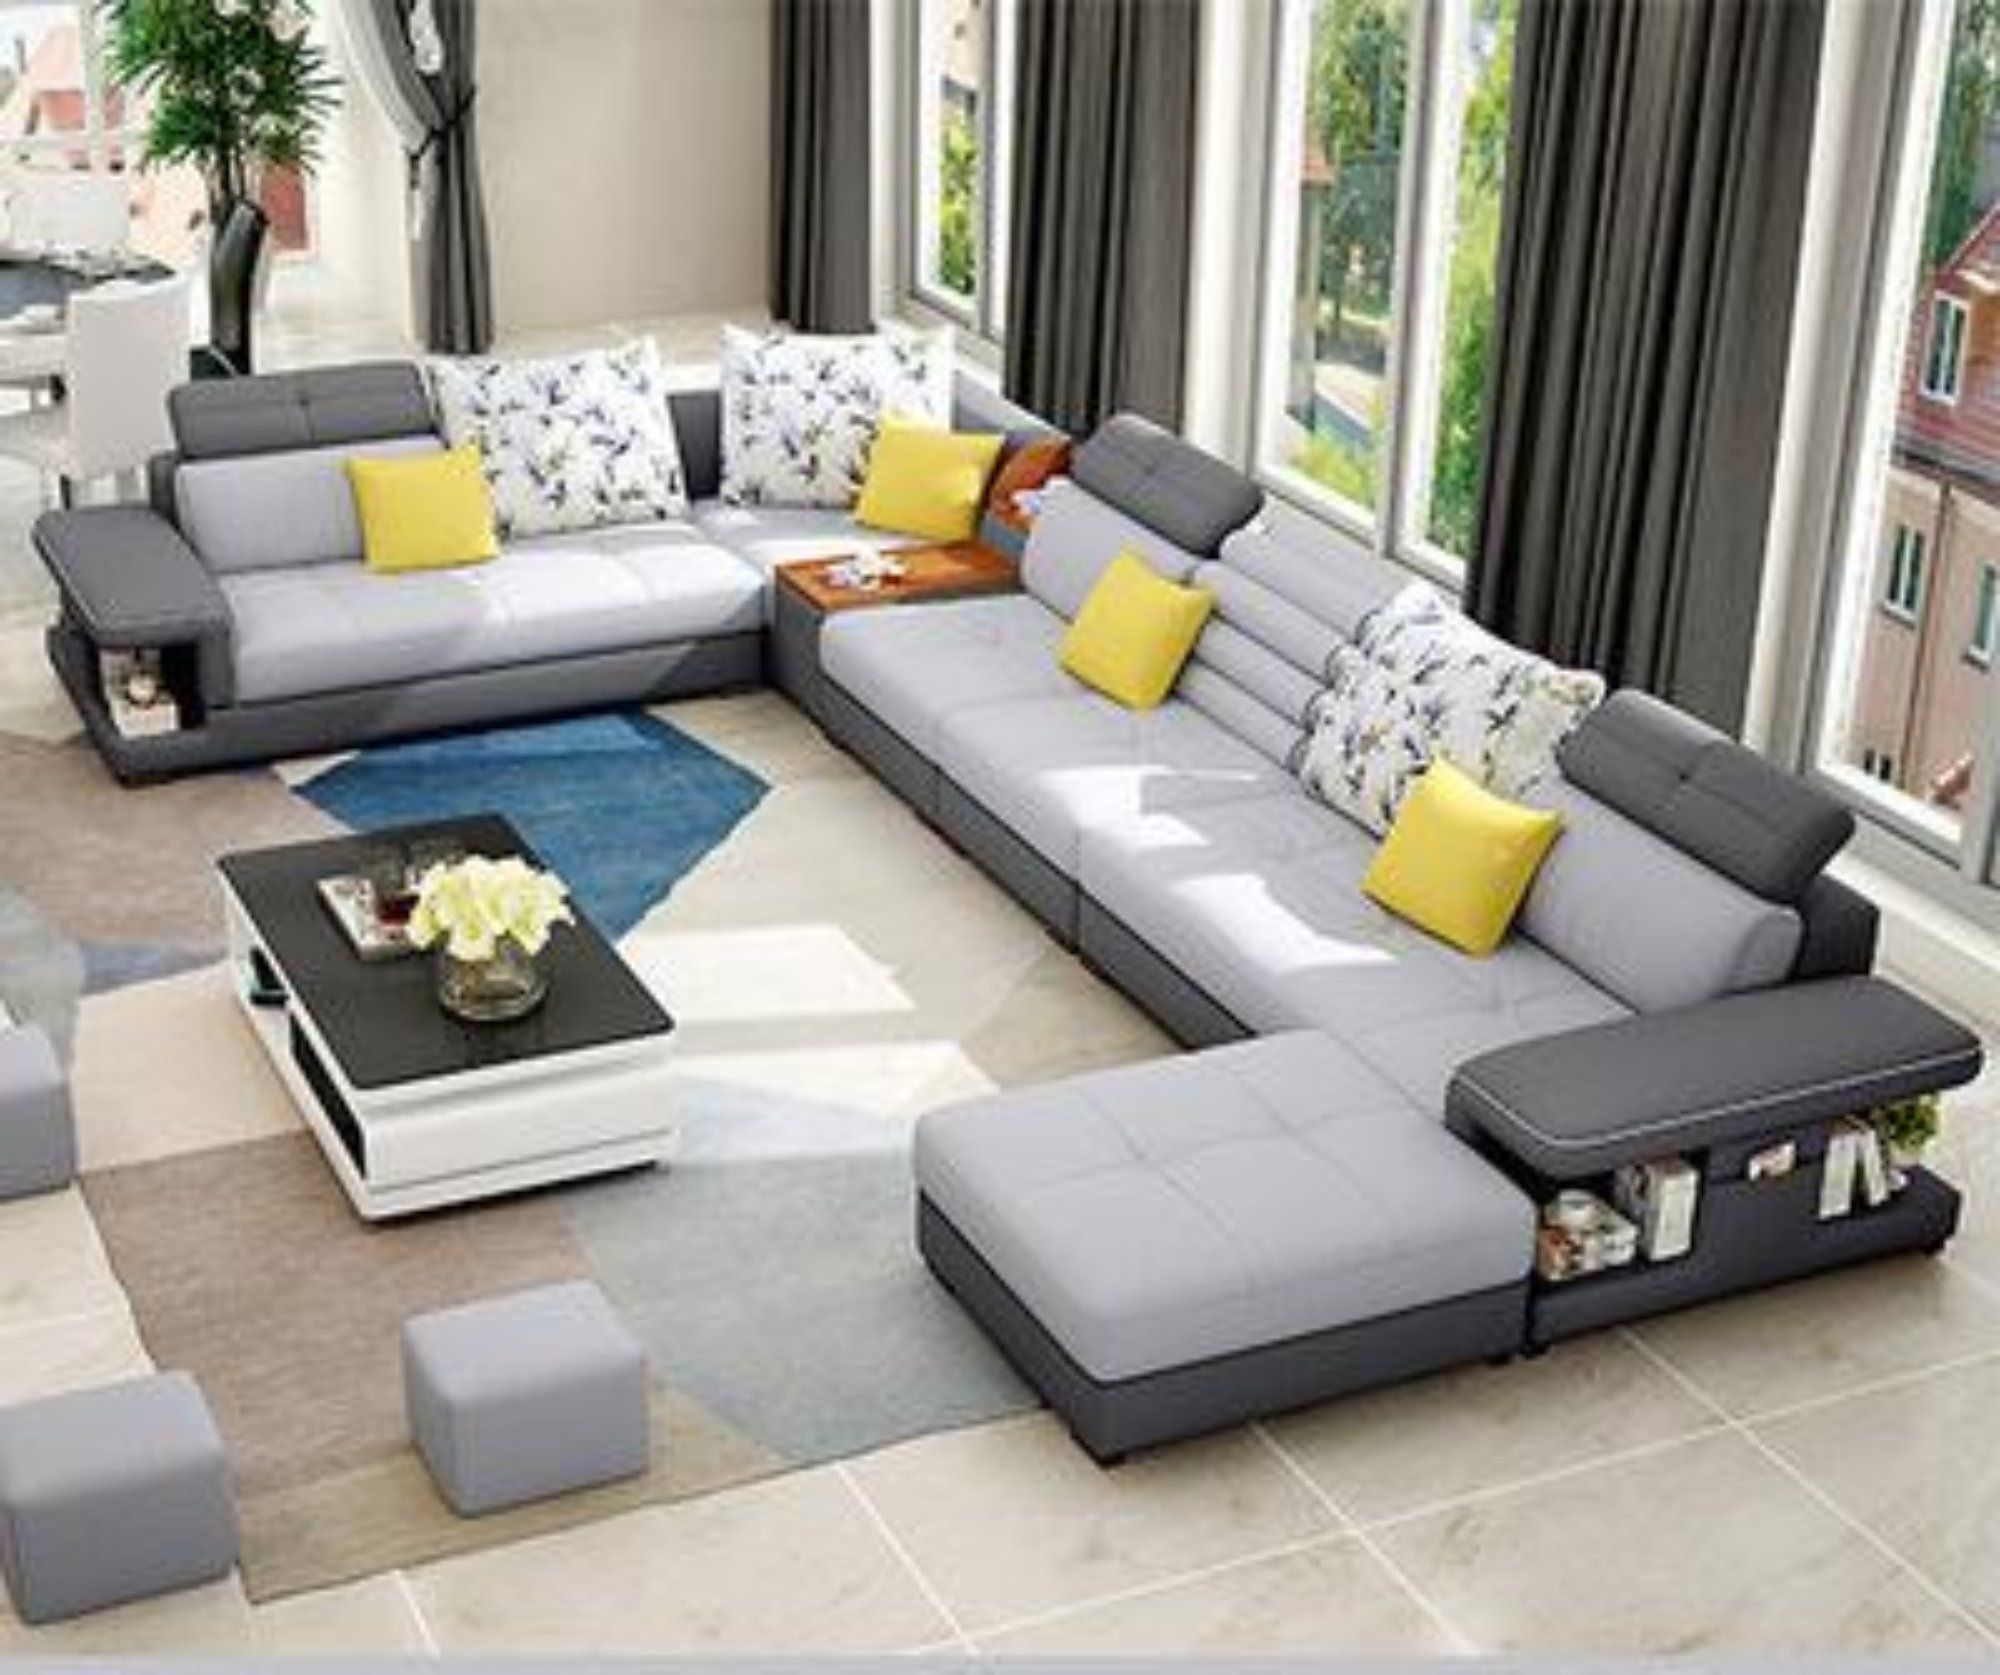 Modern Luxury U Type Fabric Sofa Living Room Sofa Design Luxury Sofa Design Living Room Decor Furniture